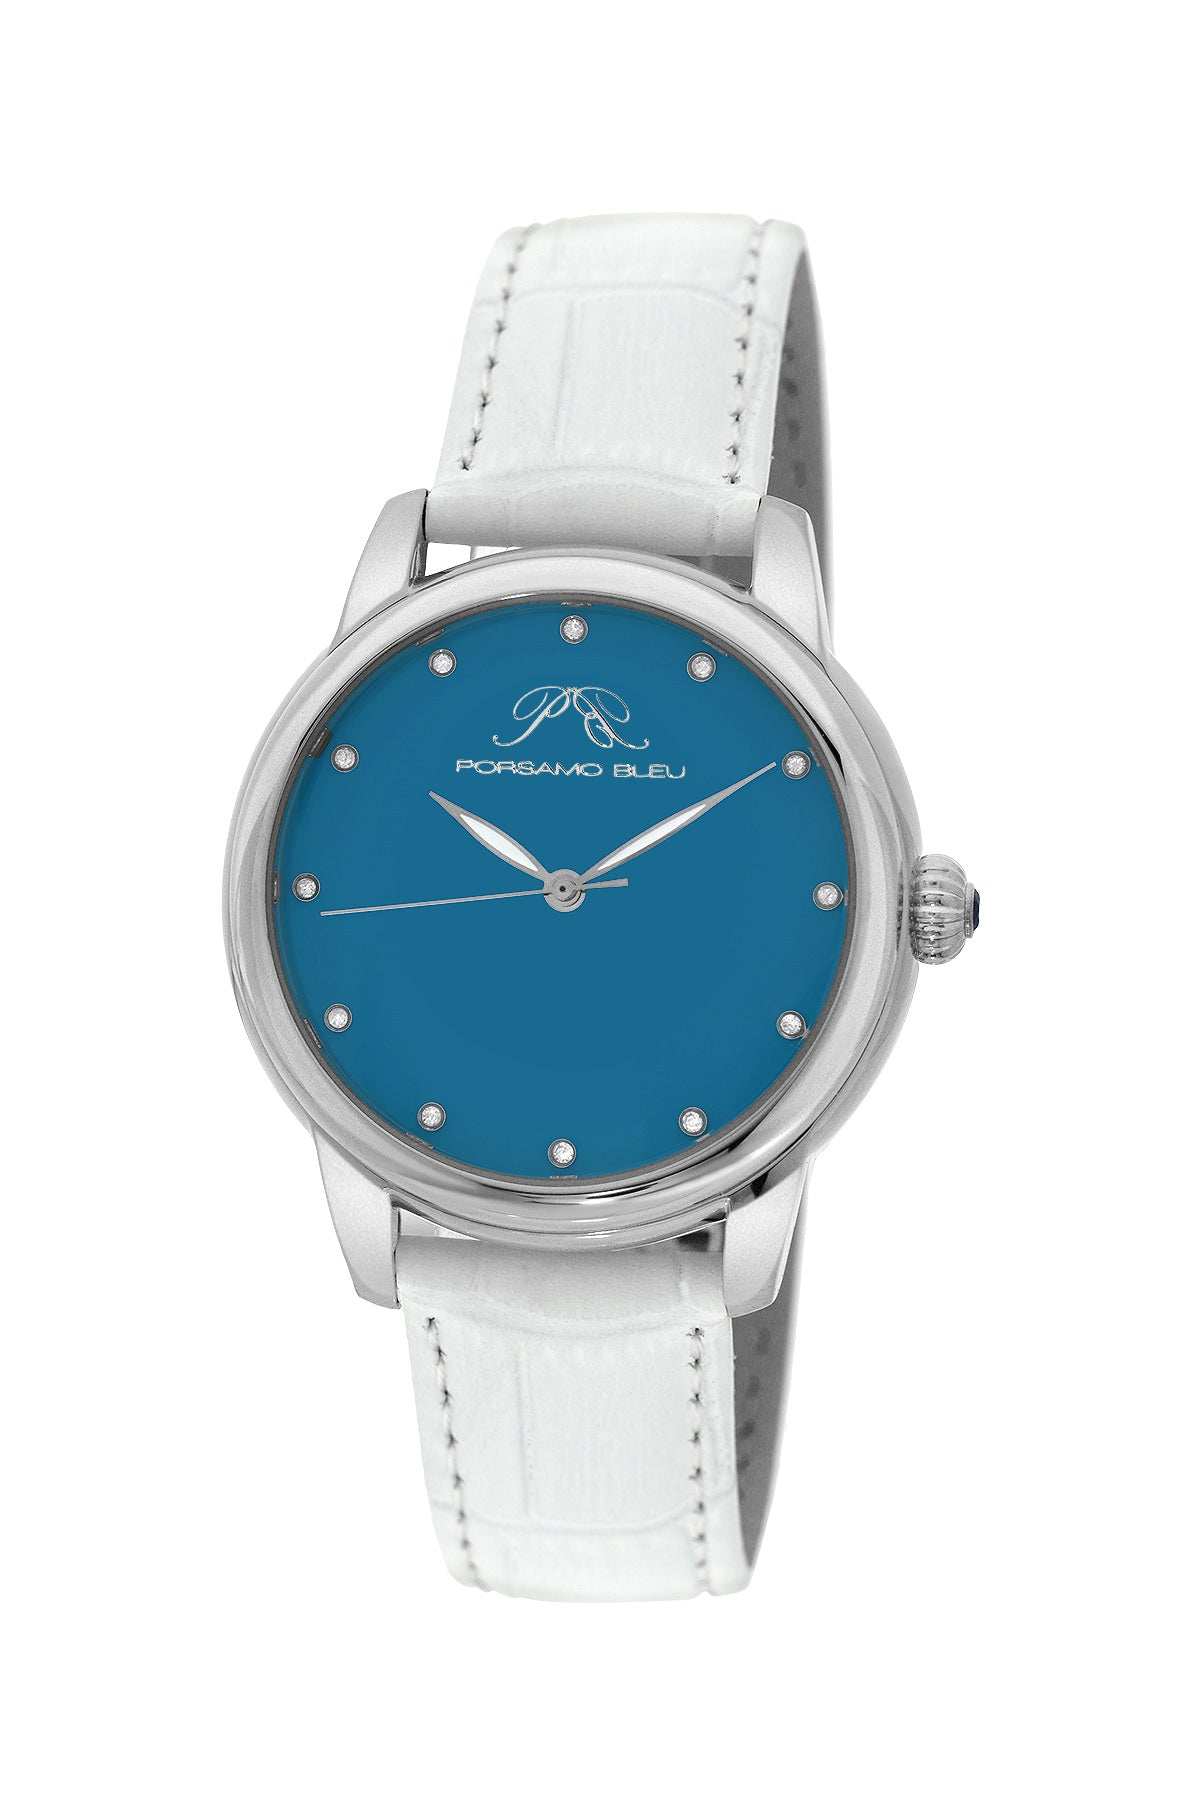 Porsamo Bleu Gemma luxury diamond women's watch, genuine leather band, silver, white, turquoise 731AGEL